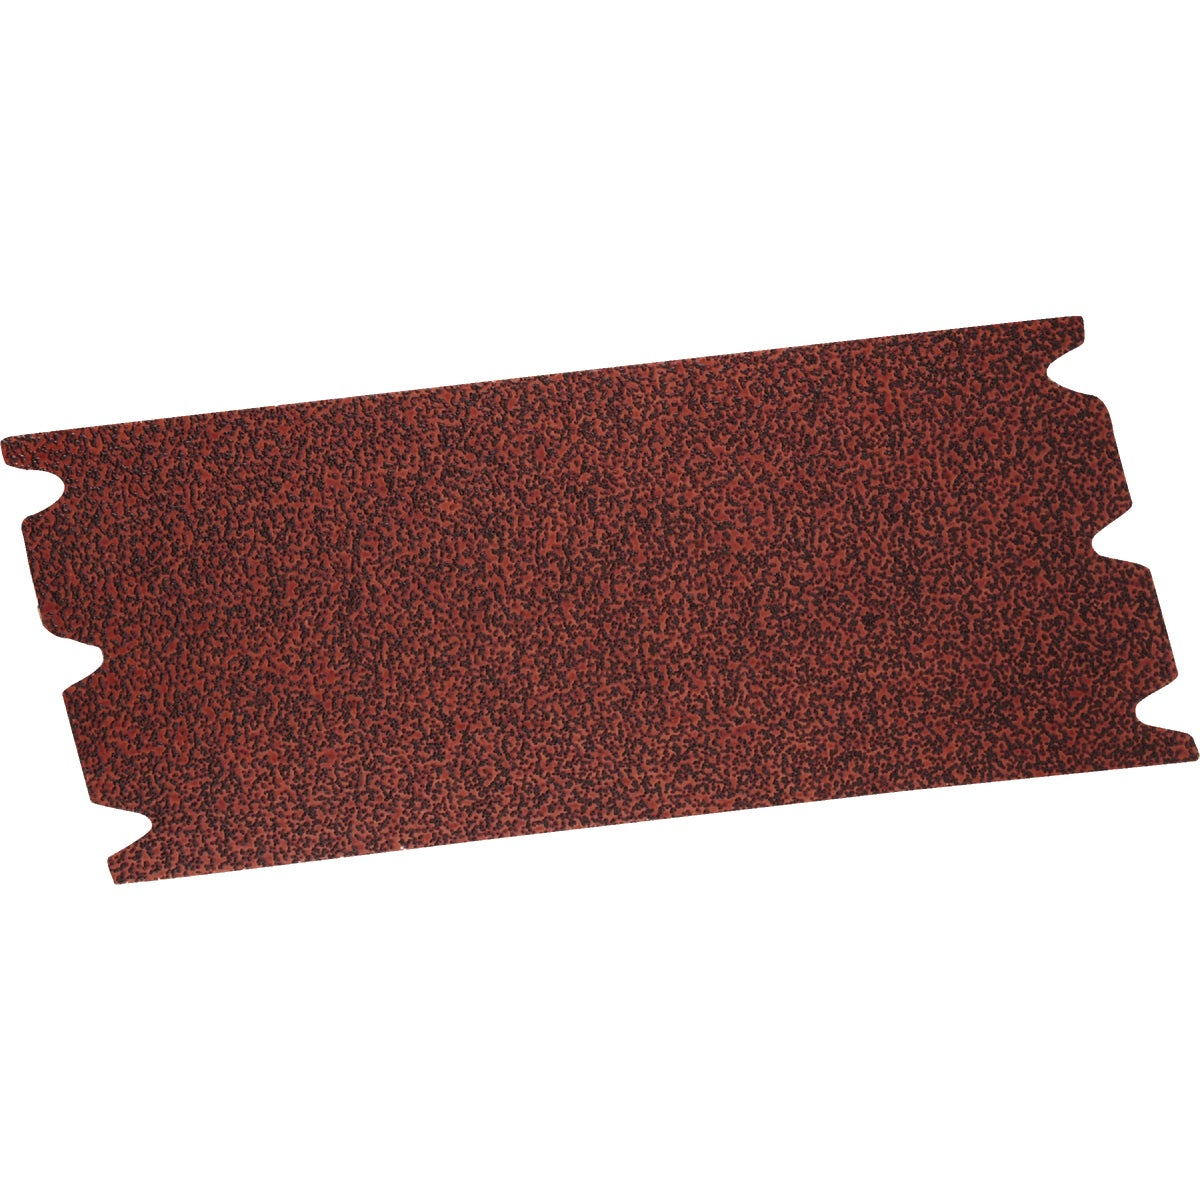 80G FLOOR SANDING SHEET - 002-808080 by Virginia Abrasives